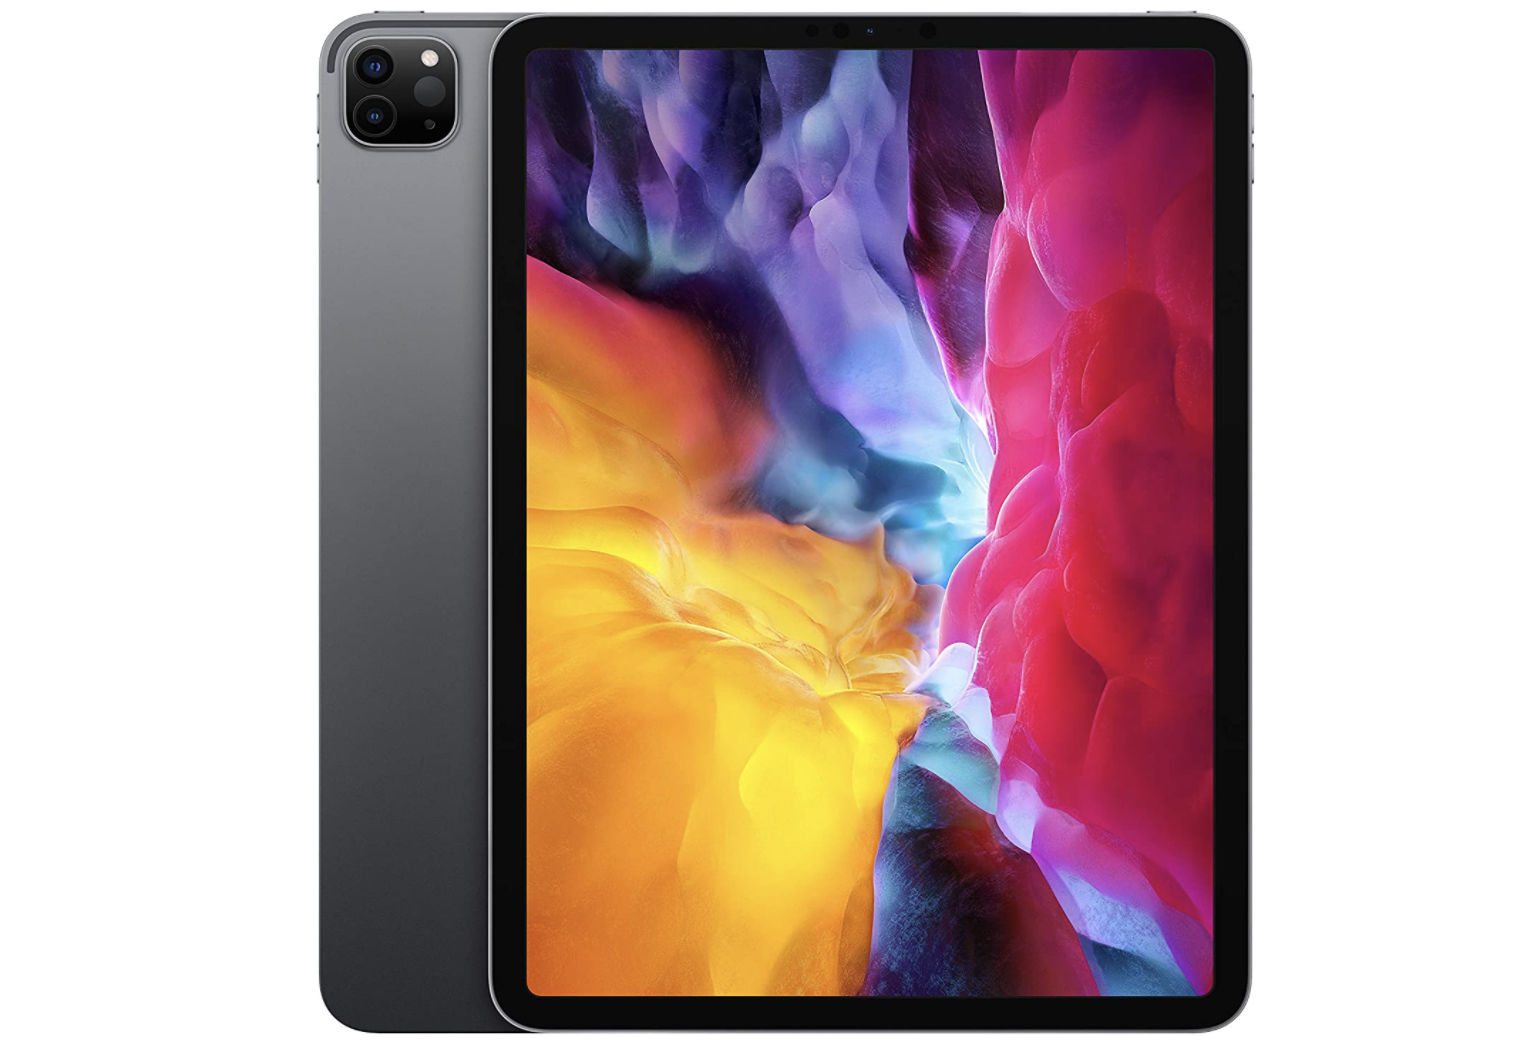 Get a 1TB iPad Pro 11-inch with a $270 discount